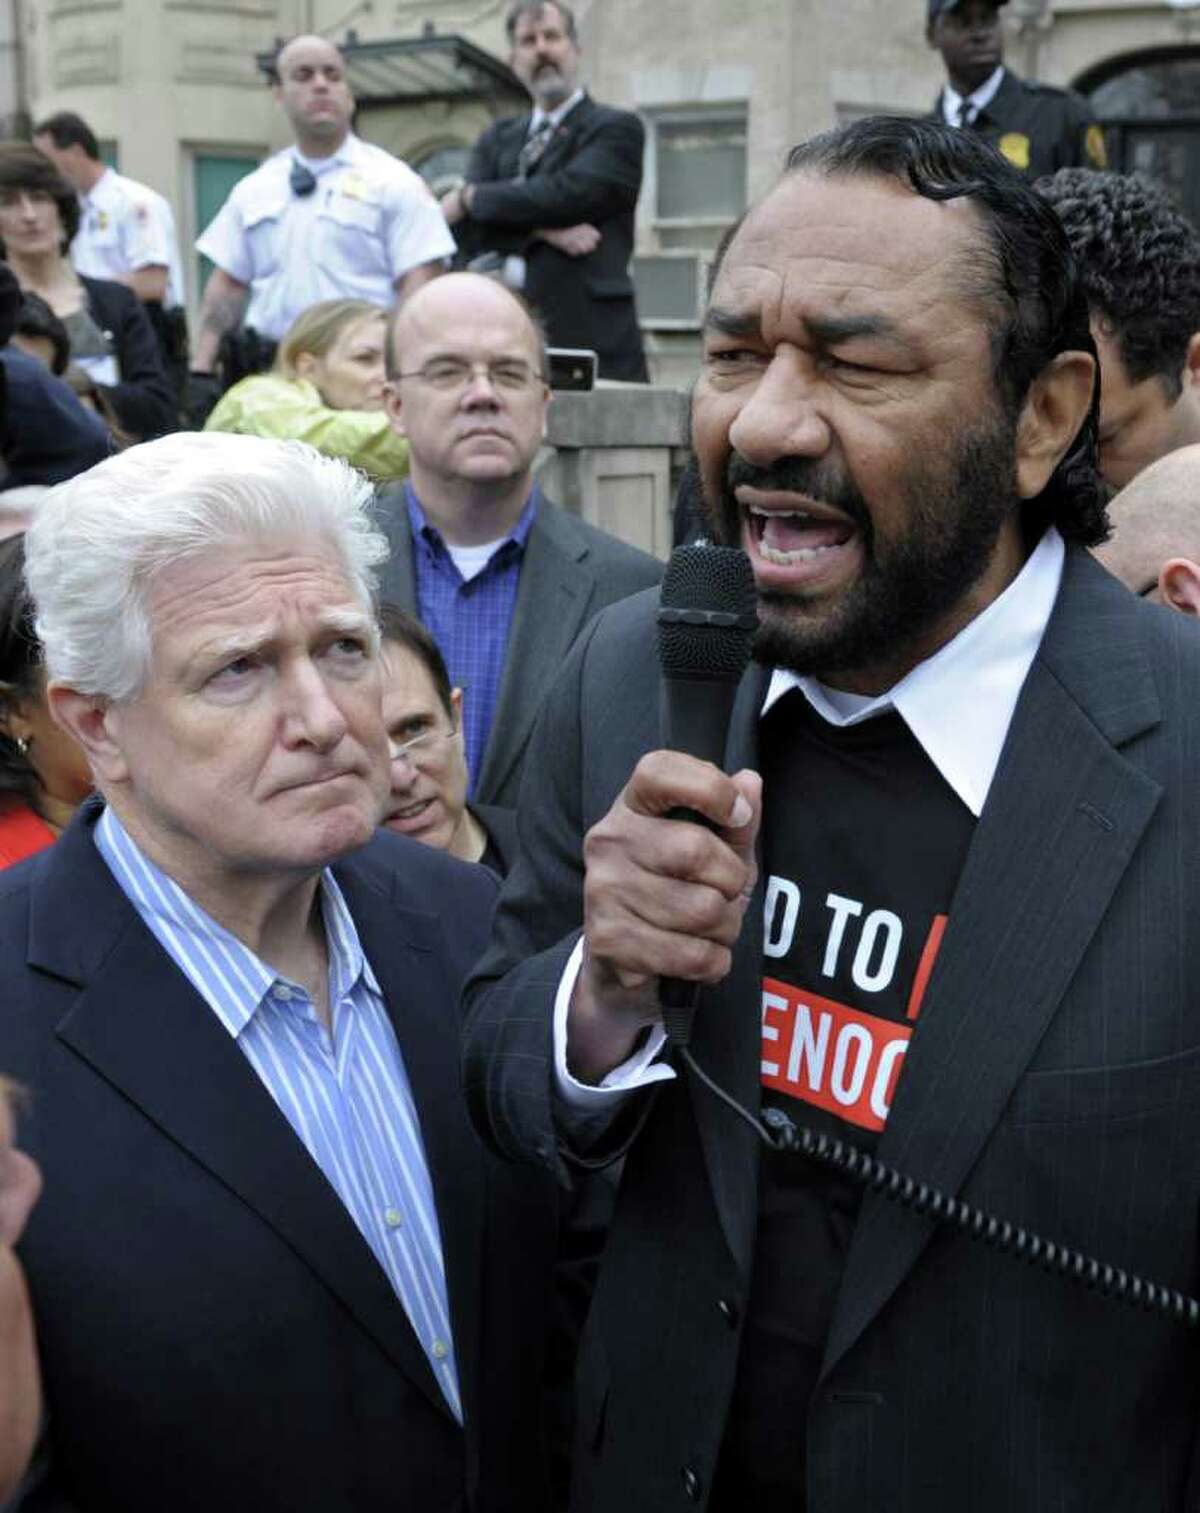 Rep. Jim Moran, D-Va. looks at left, as Rep. Al Green, D-Texas speaks during a protest at the Sudan Embassy in Washington, Friday, March 16, 2012. The demonstrators are protesting the escalating humanitarian emergency in Sudan that threatens the lives of 500,000 people. Rep. Jim McGovern, D-Mass. is at center.